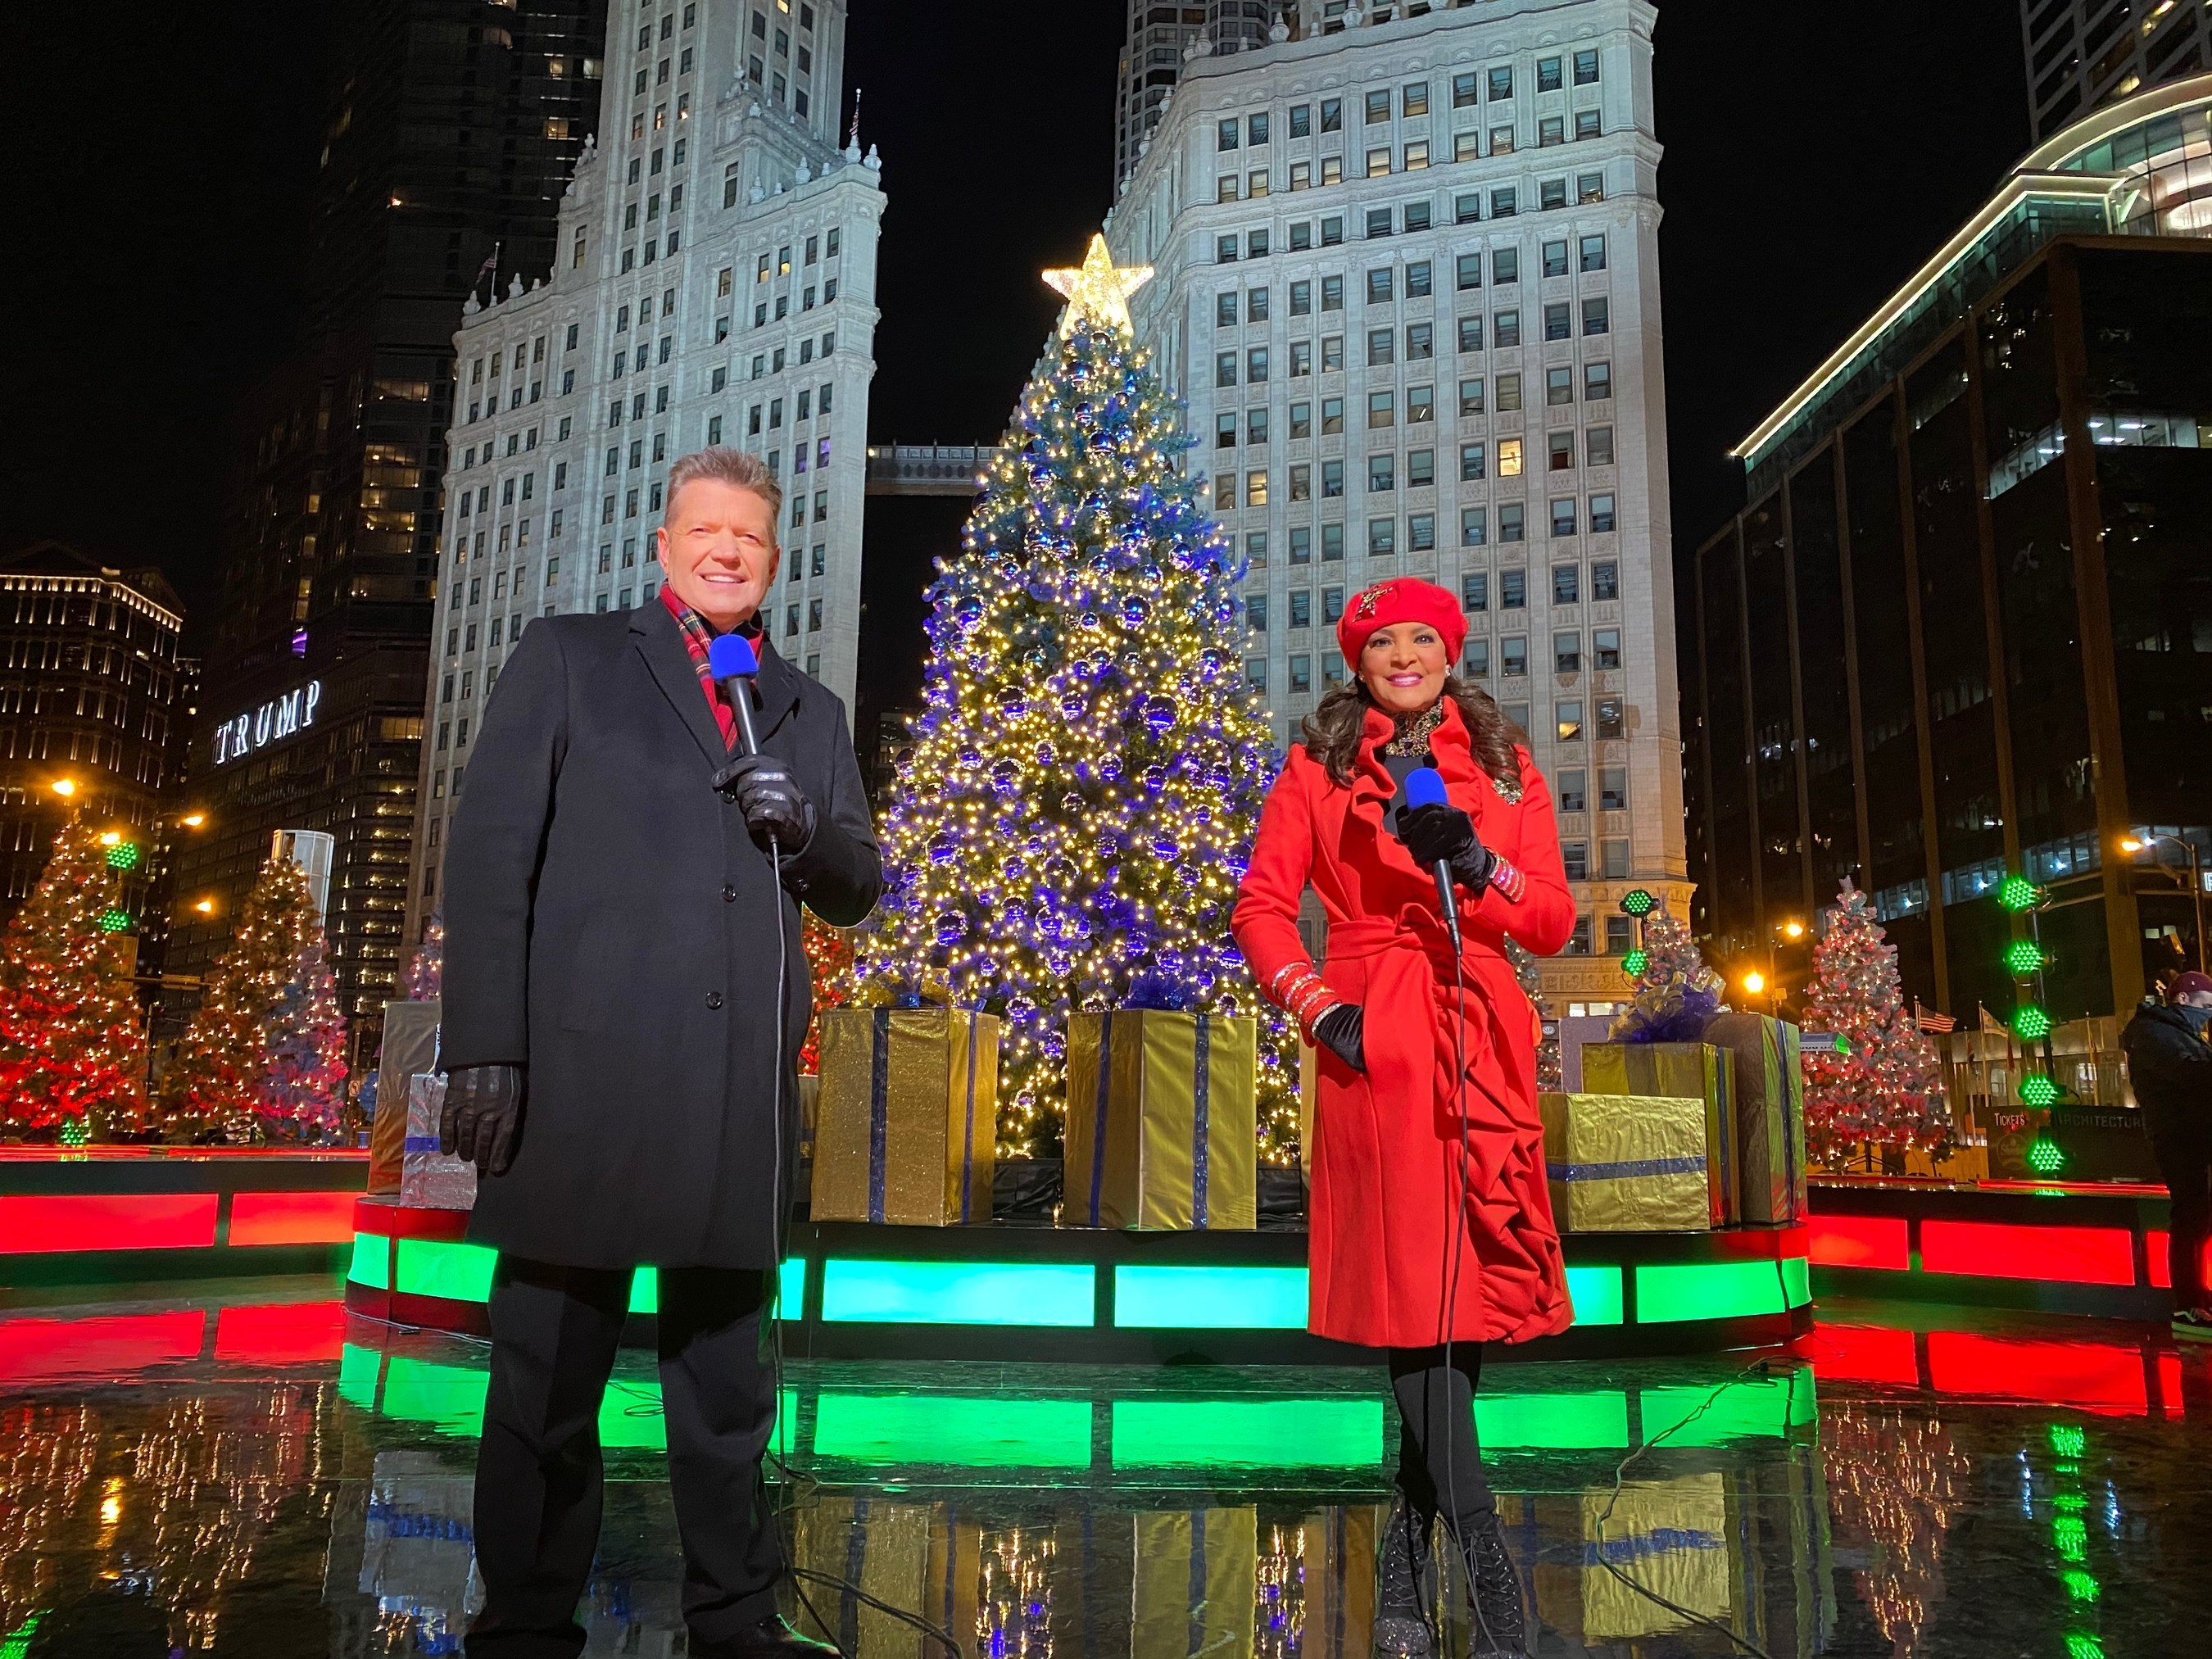 Bmo Harris Bank Christmas Display 2021 Abc 7 Chicago Captures The Magic Of The Season With A Spectacular New Version Of The Bmo Harris Bank Magnificent Mile Lights Festival Headlined By Academy And Grammy Award Winning Actress Singer Jennifer Hudson